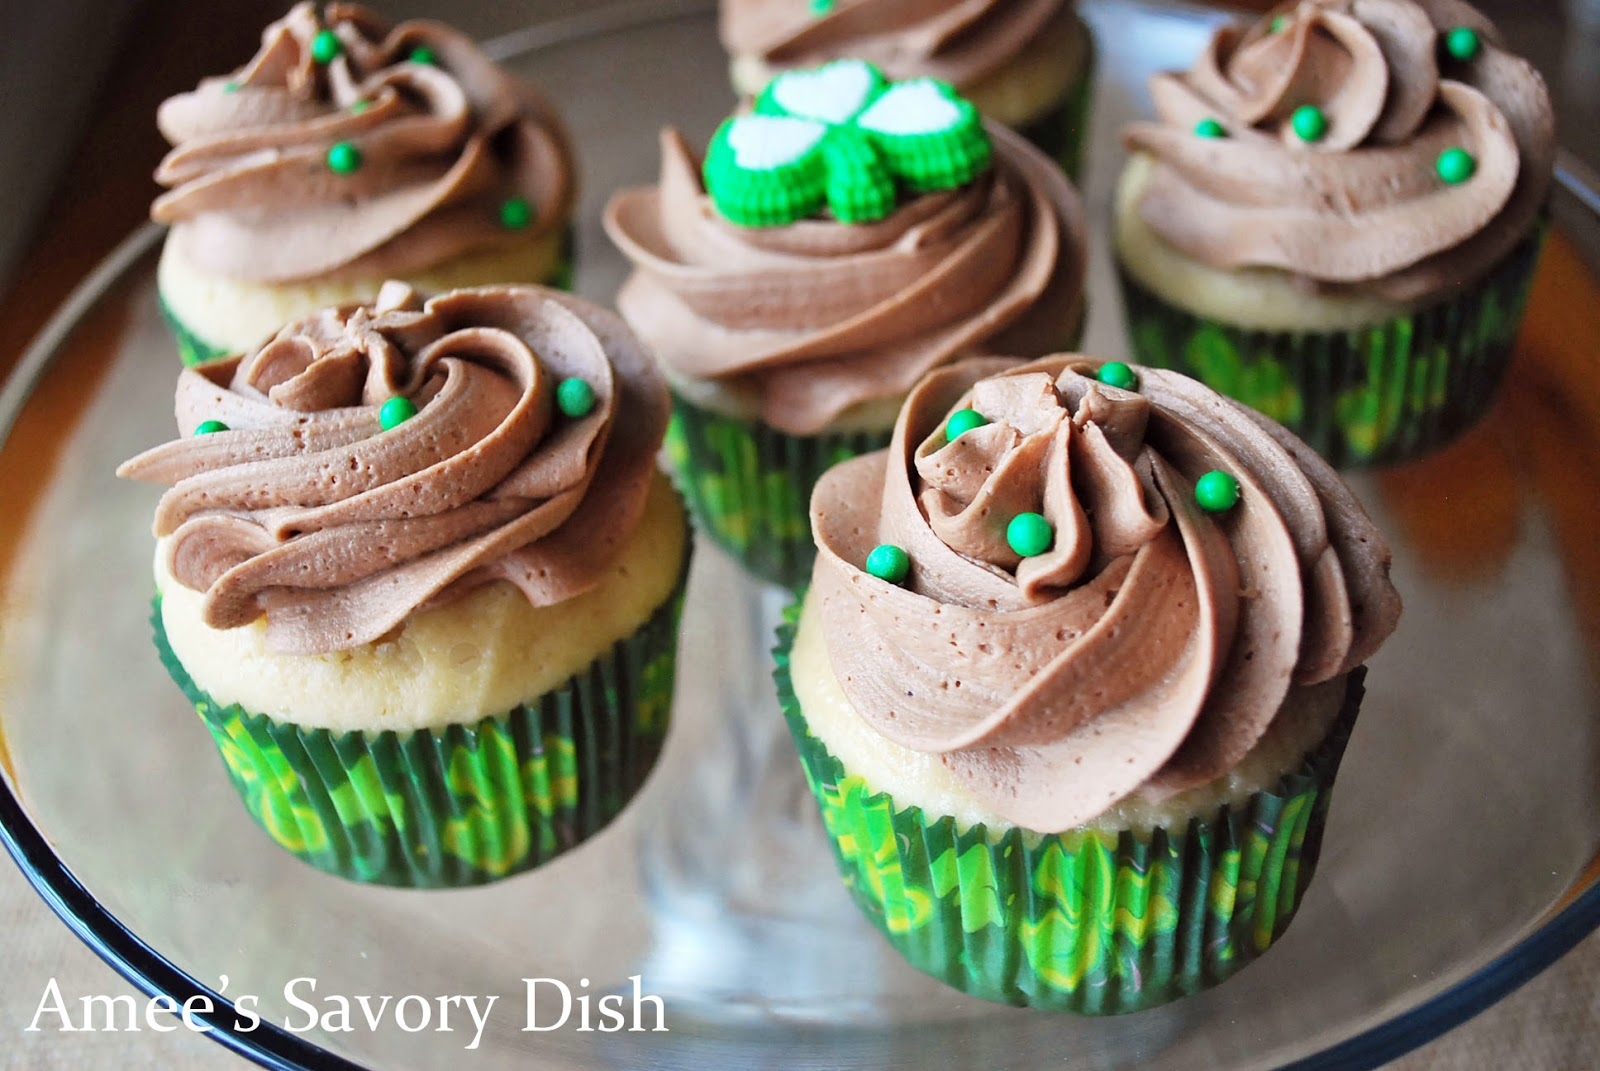 ... Irish Cream Cupcakes with Irish Cream Buttercream Frosting recipes